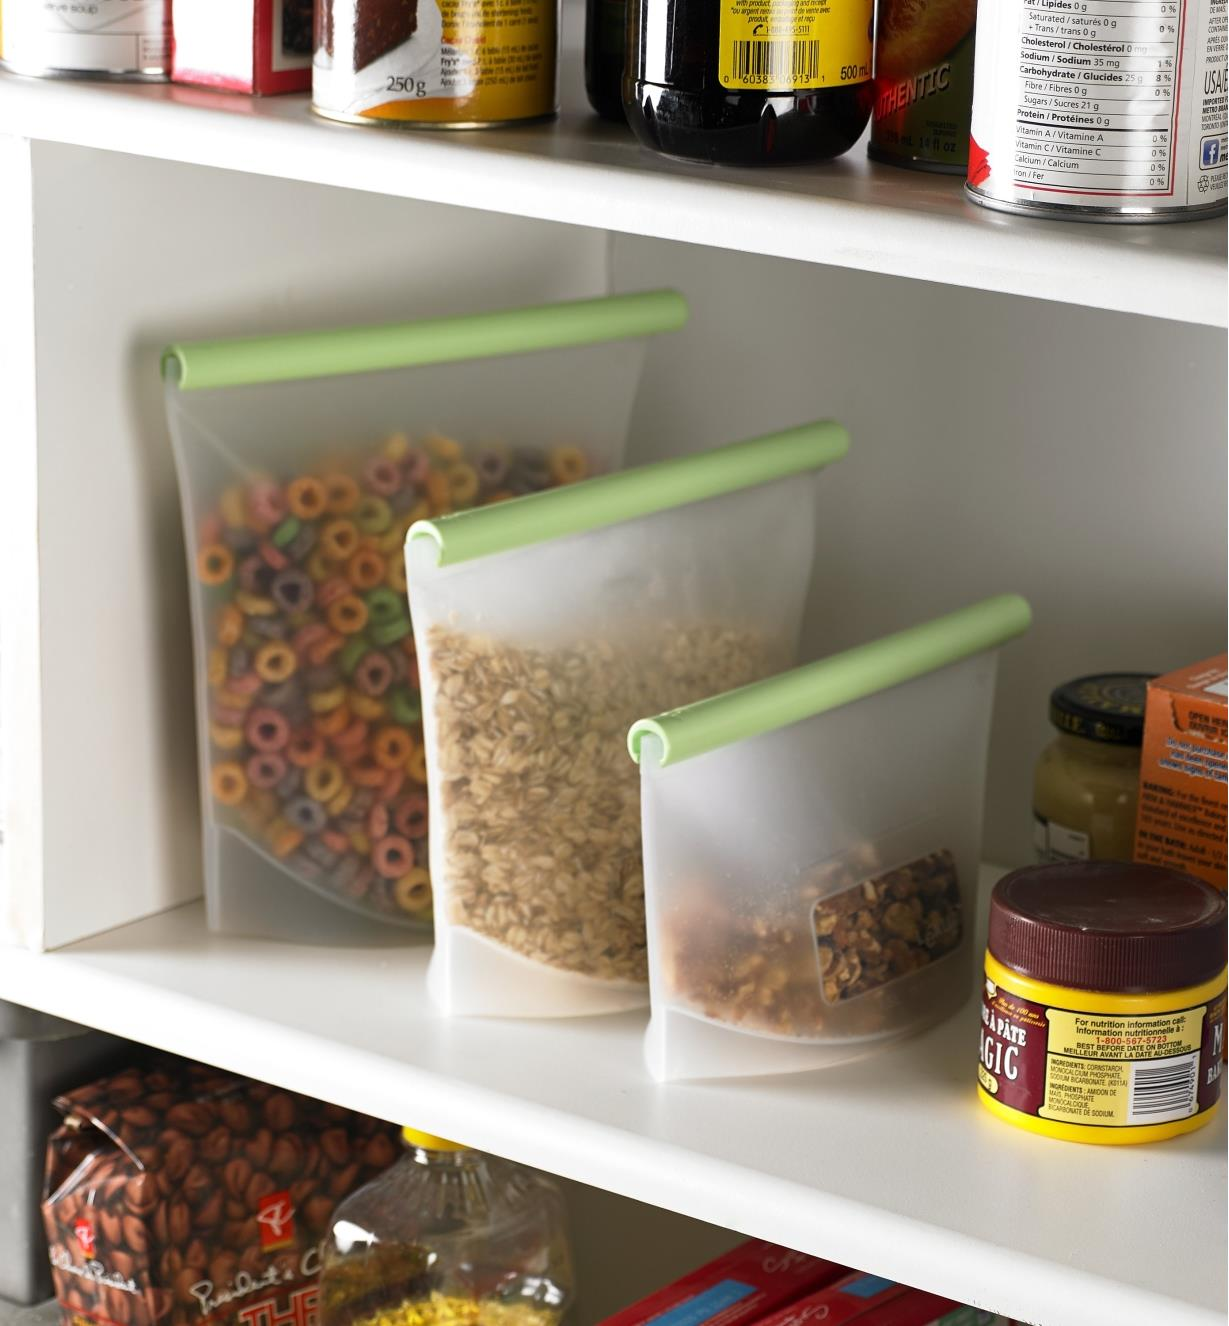 Set of 3 Reusable Silicone Bags filled with cereal in a pantry